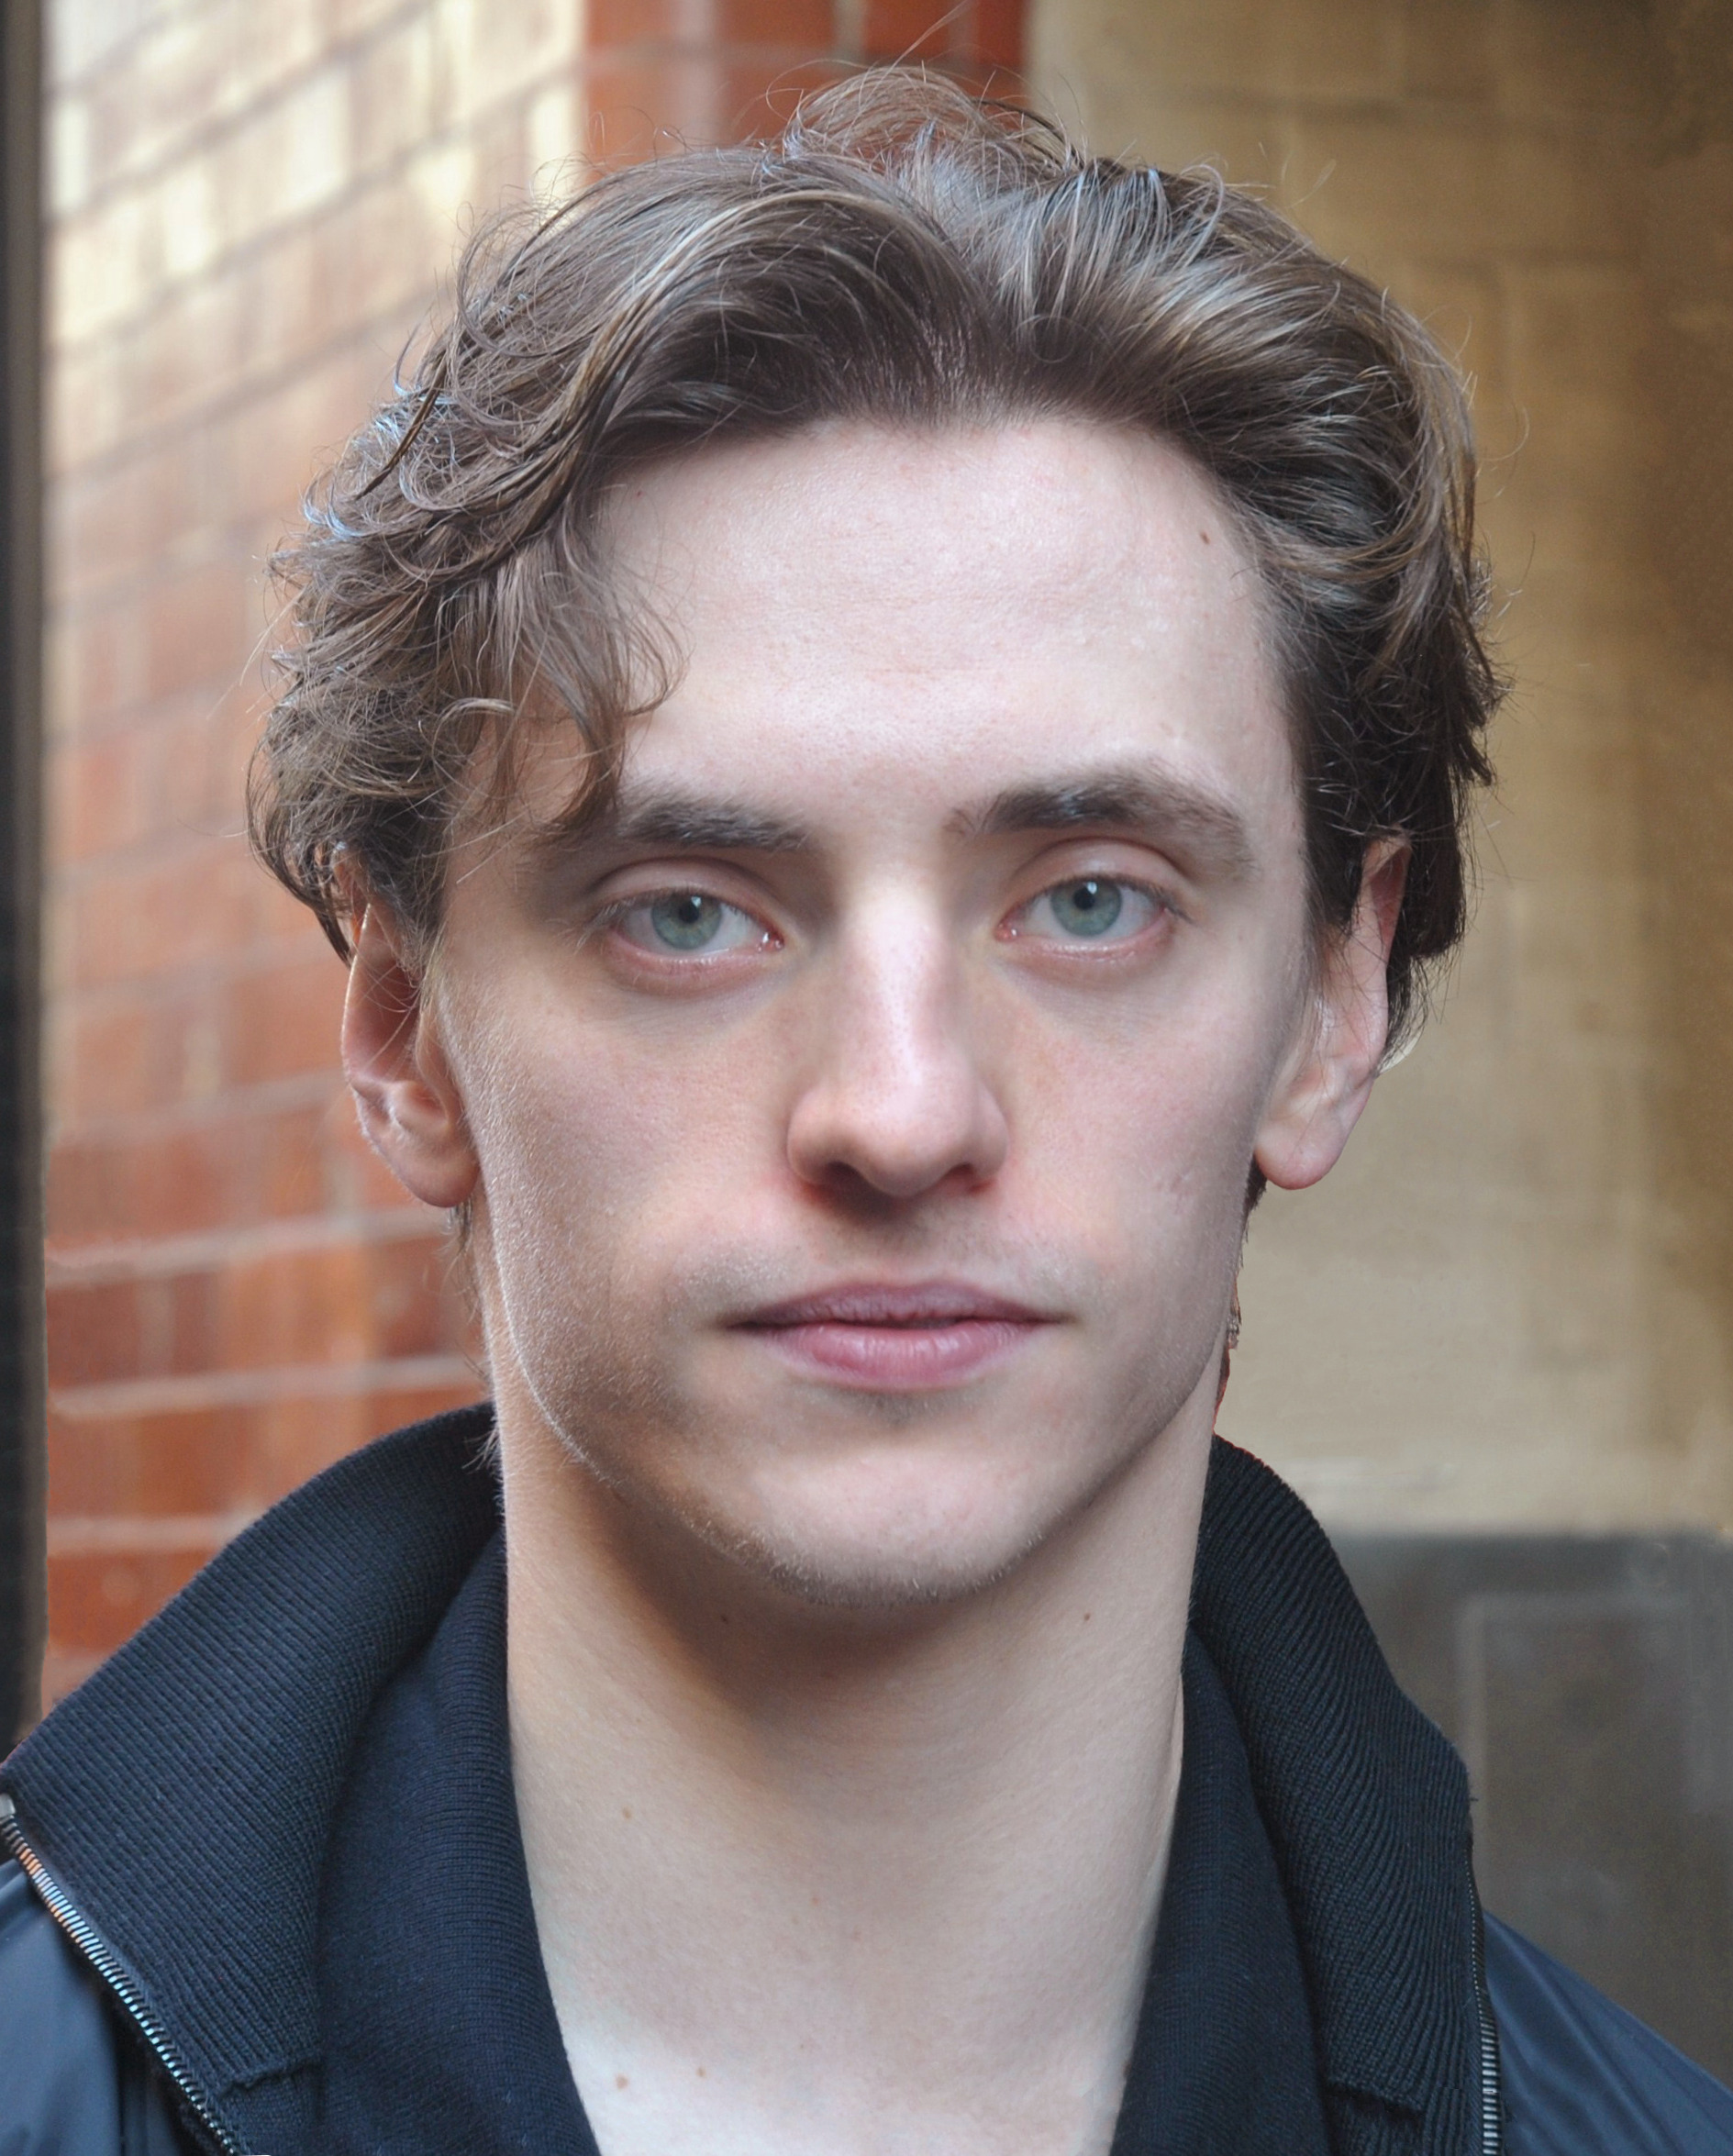 The 29-year old son of father Vladimir Polunin and mother Galina Polunina Sergei Polunin in 2019 photo. Sergei Polunin earned a  million dollar salary - leaving the net worth at 8 million in 2019